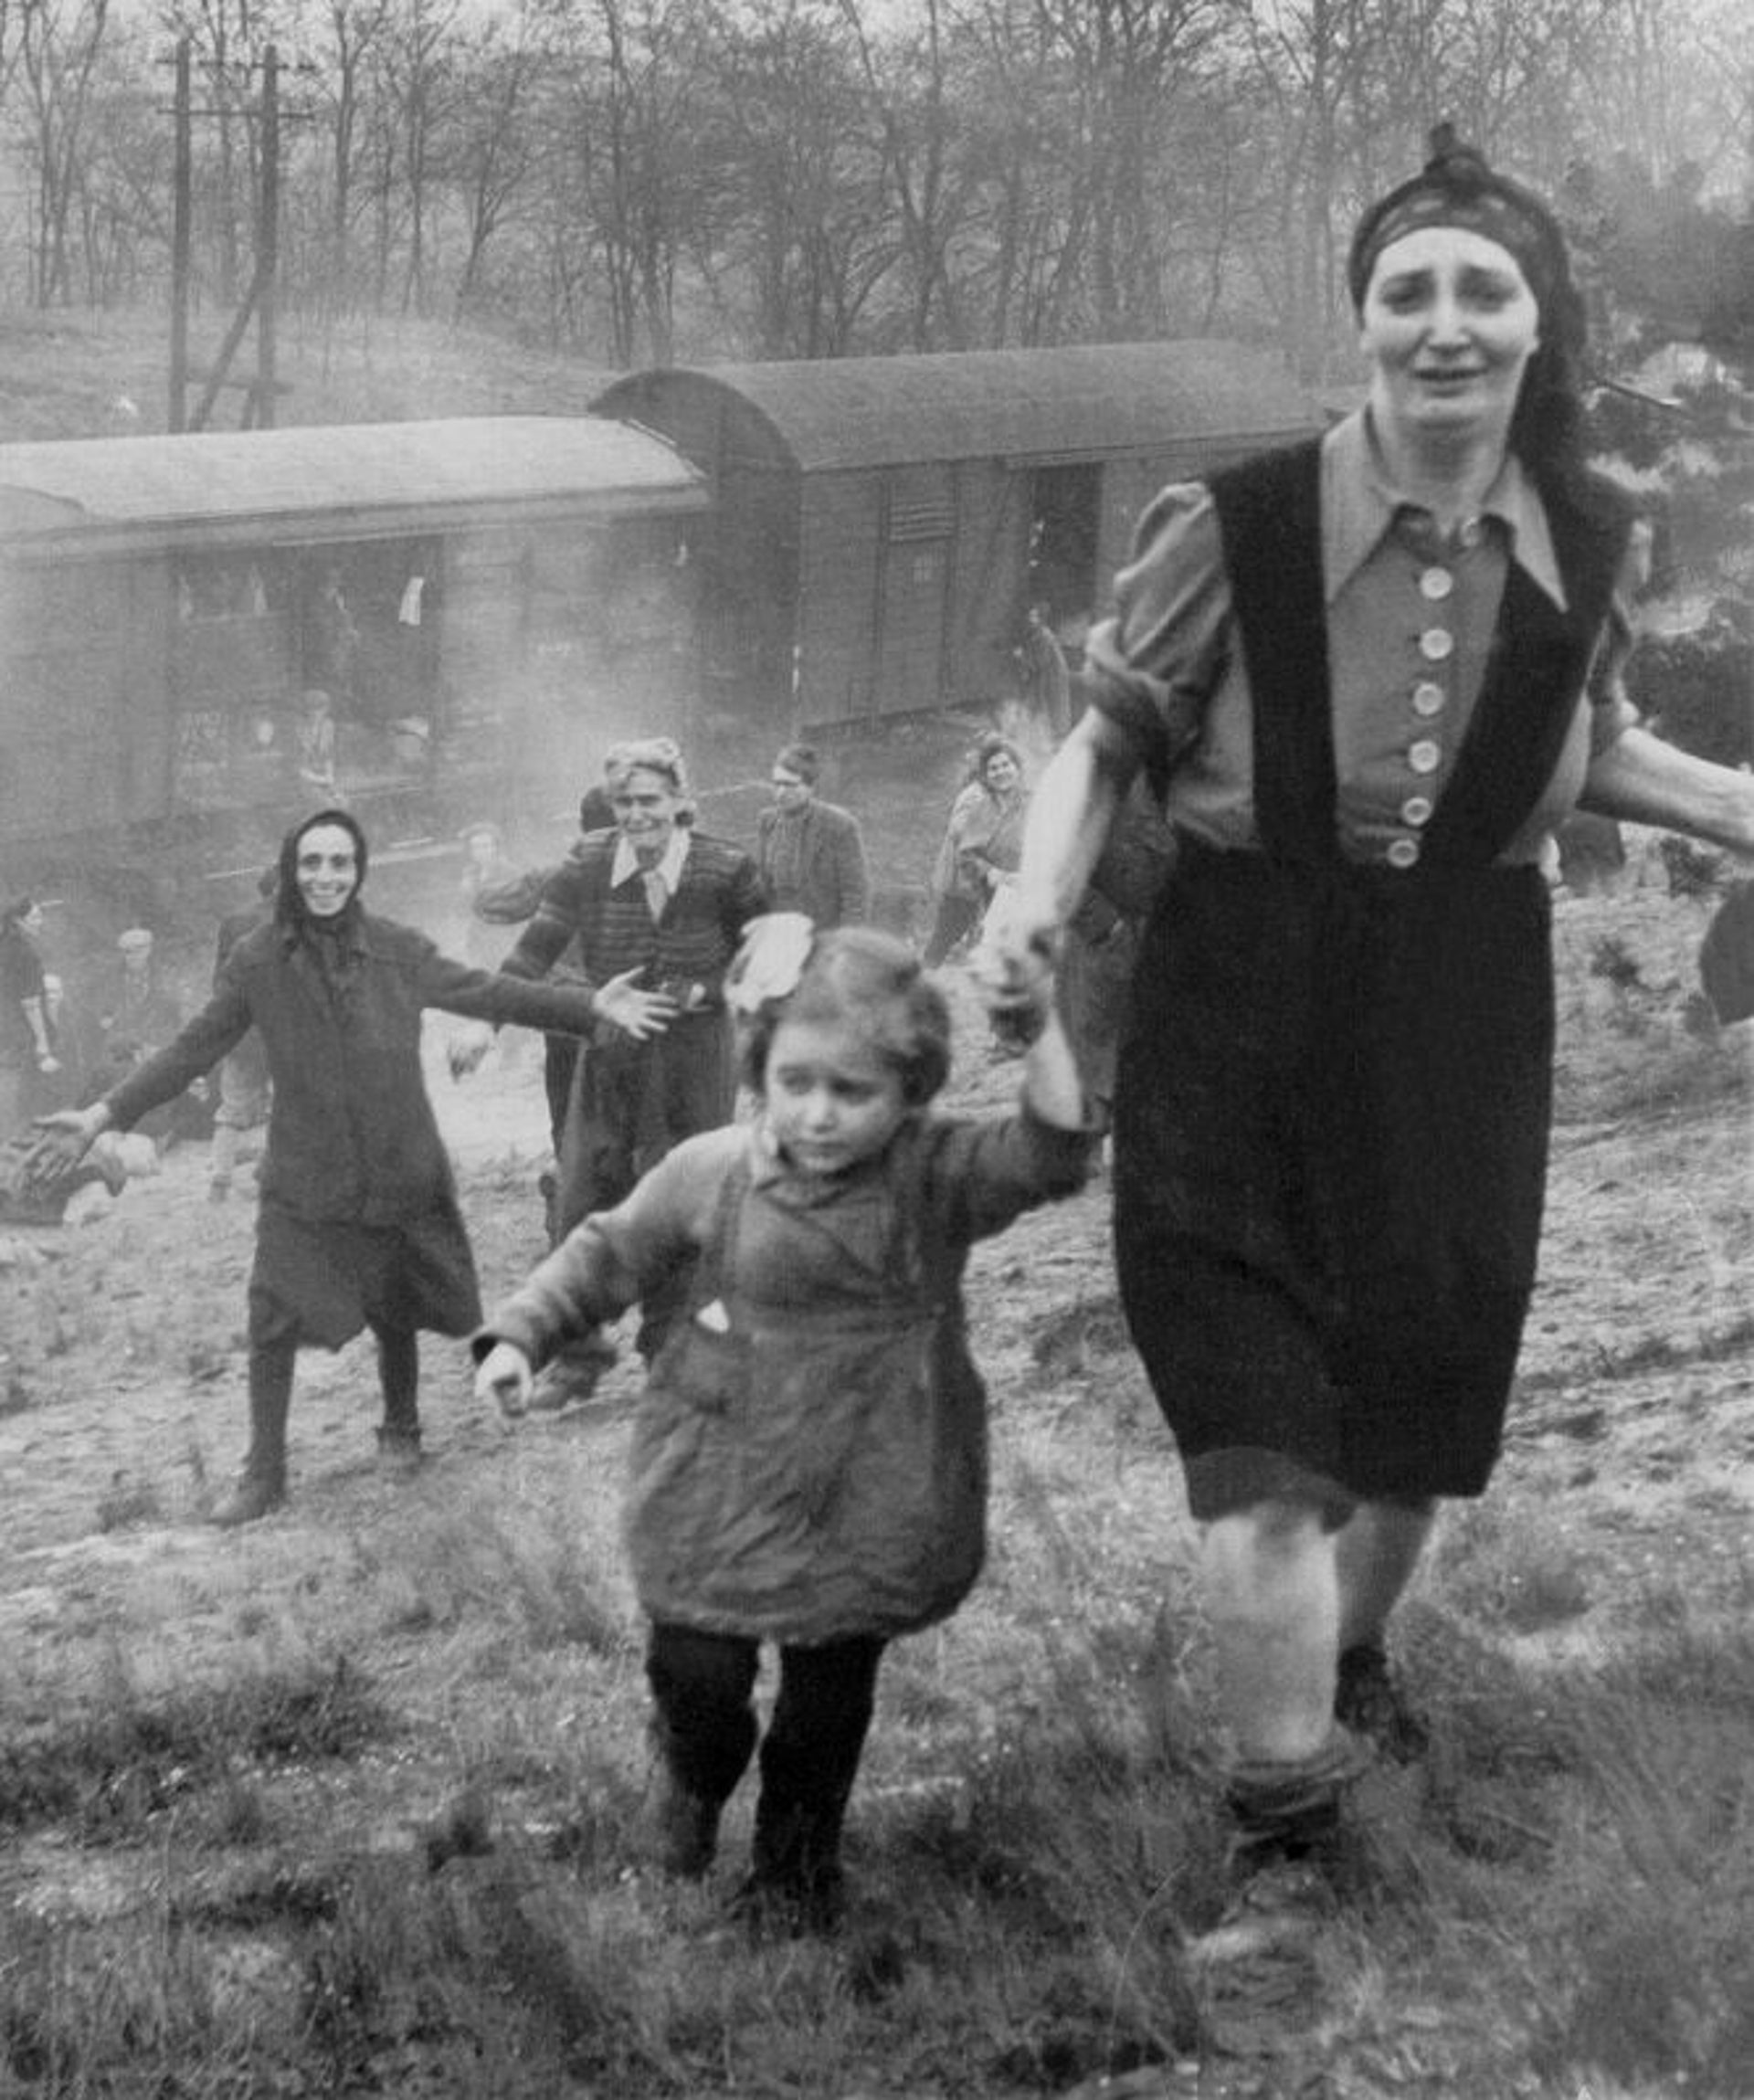 Still-unidentified women, moments after liberation, April 13, 1945.